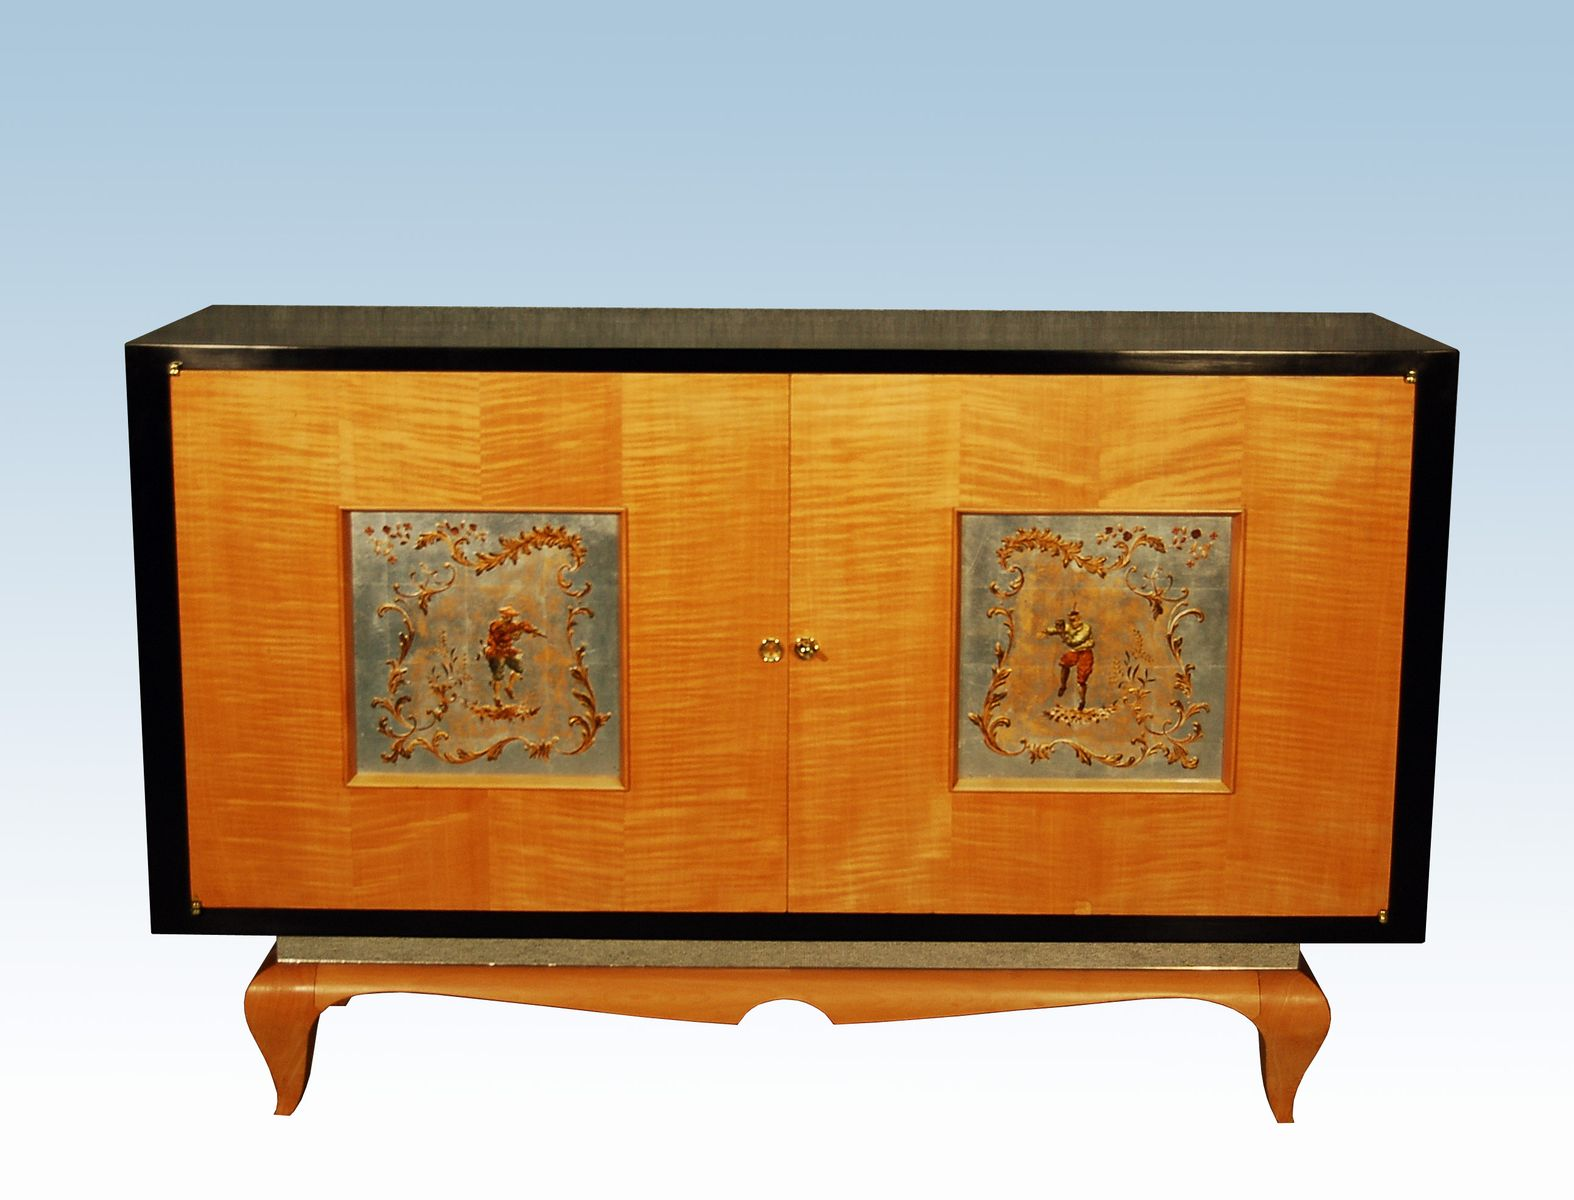 vintage french art d co sycamore cabinet 1940s for sale at pamono. Black Bedroom Furniture Sets. Home Design Ideas